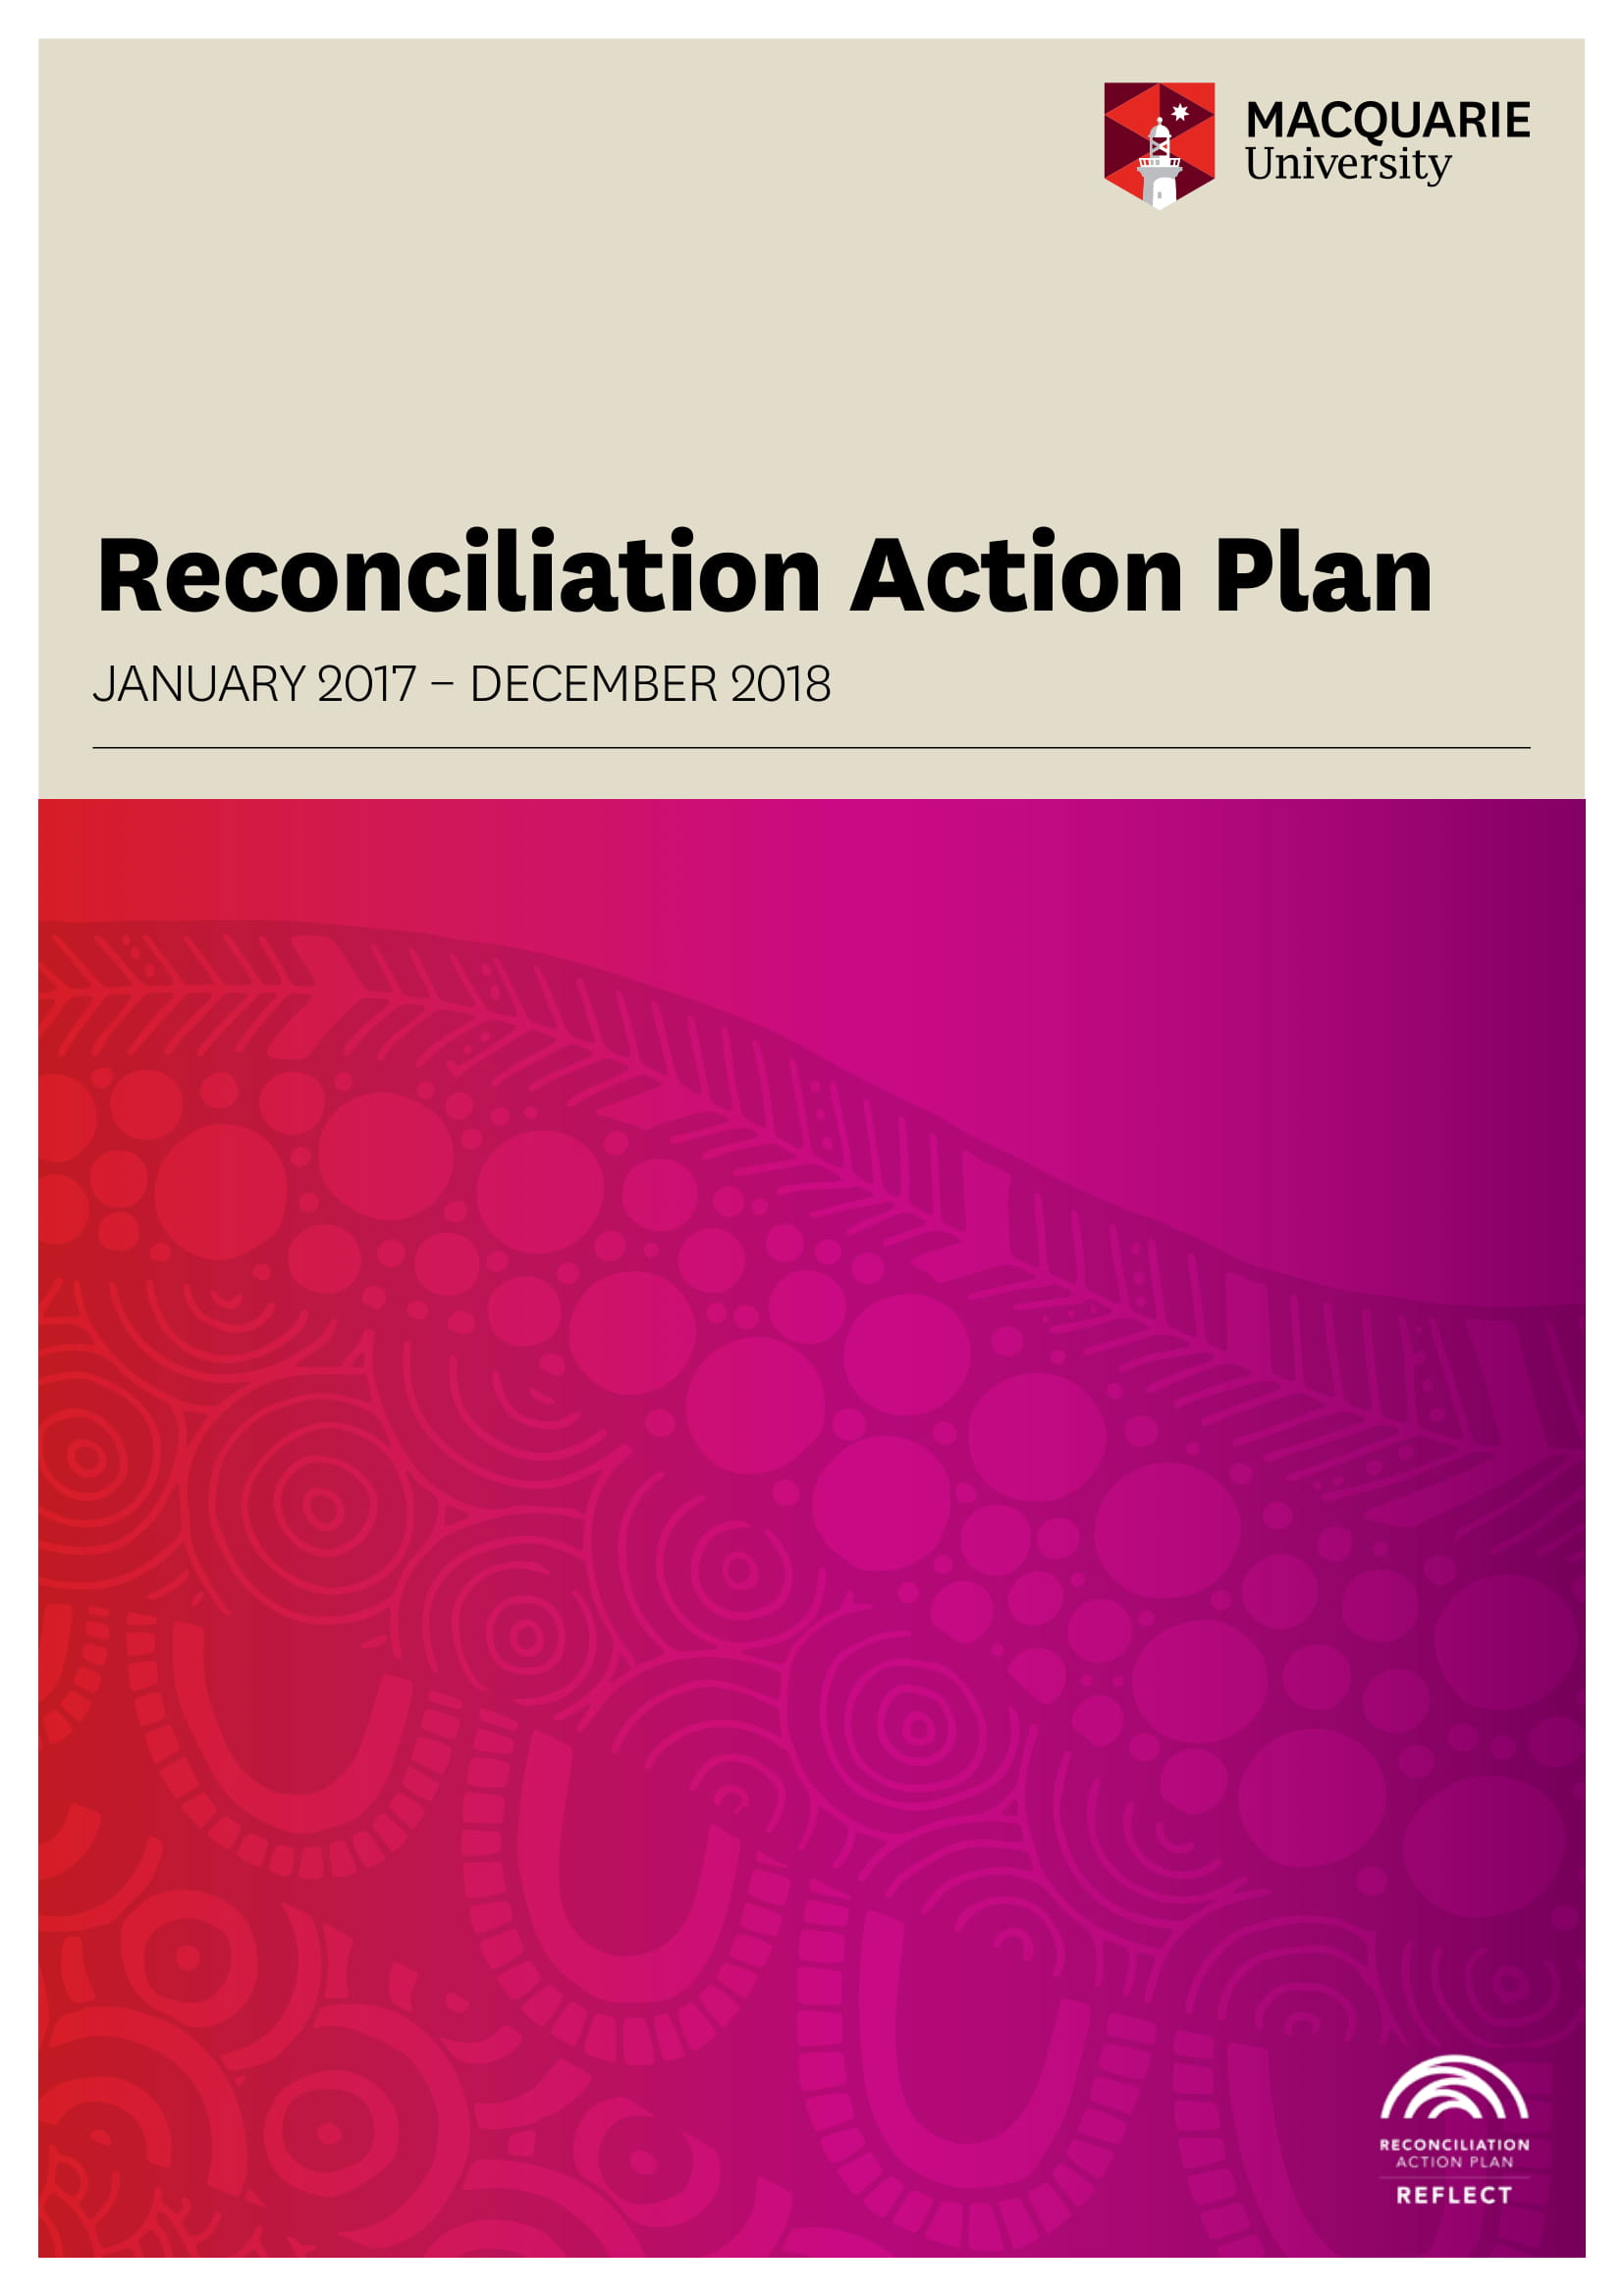 complete reconciliation action plan example 01